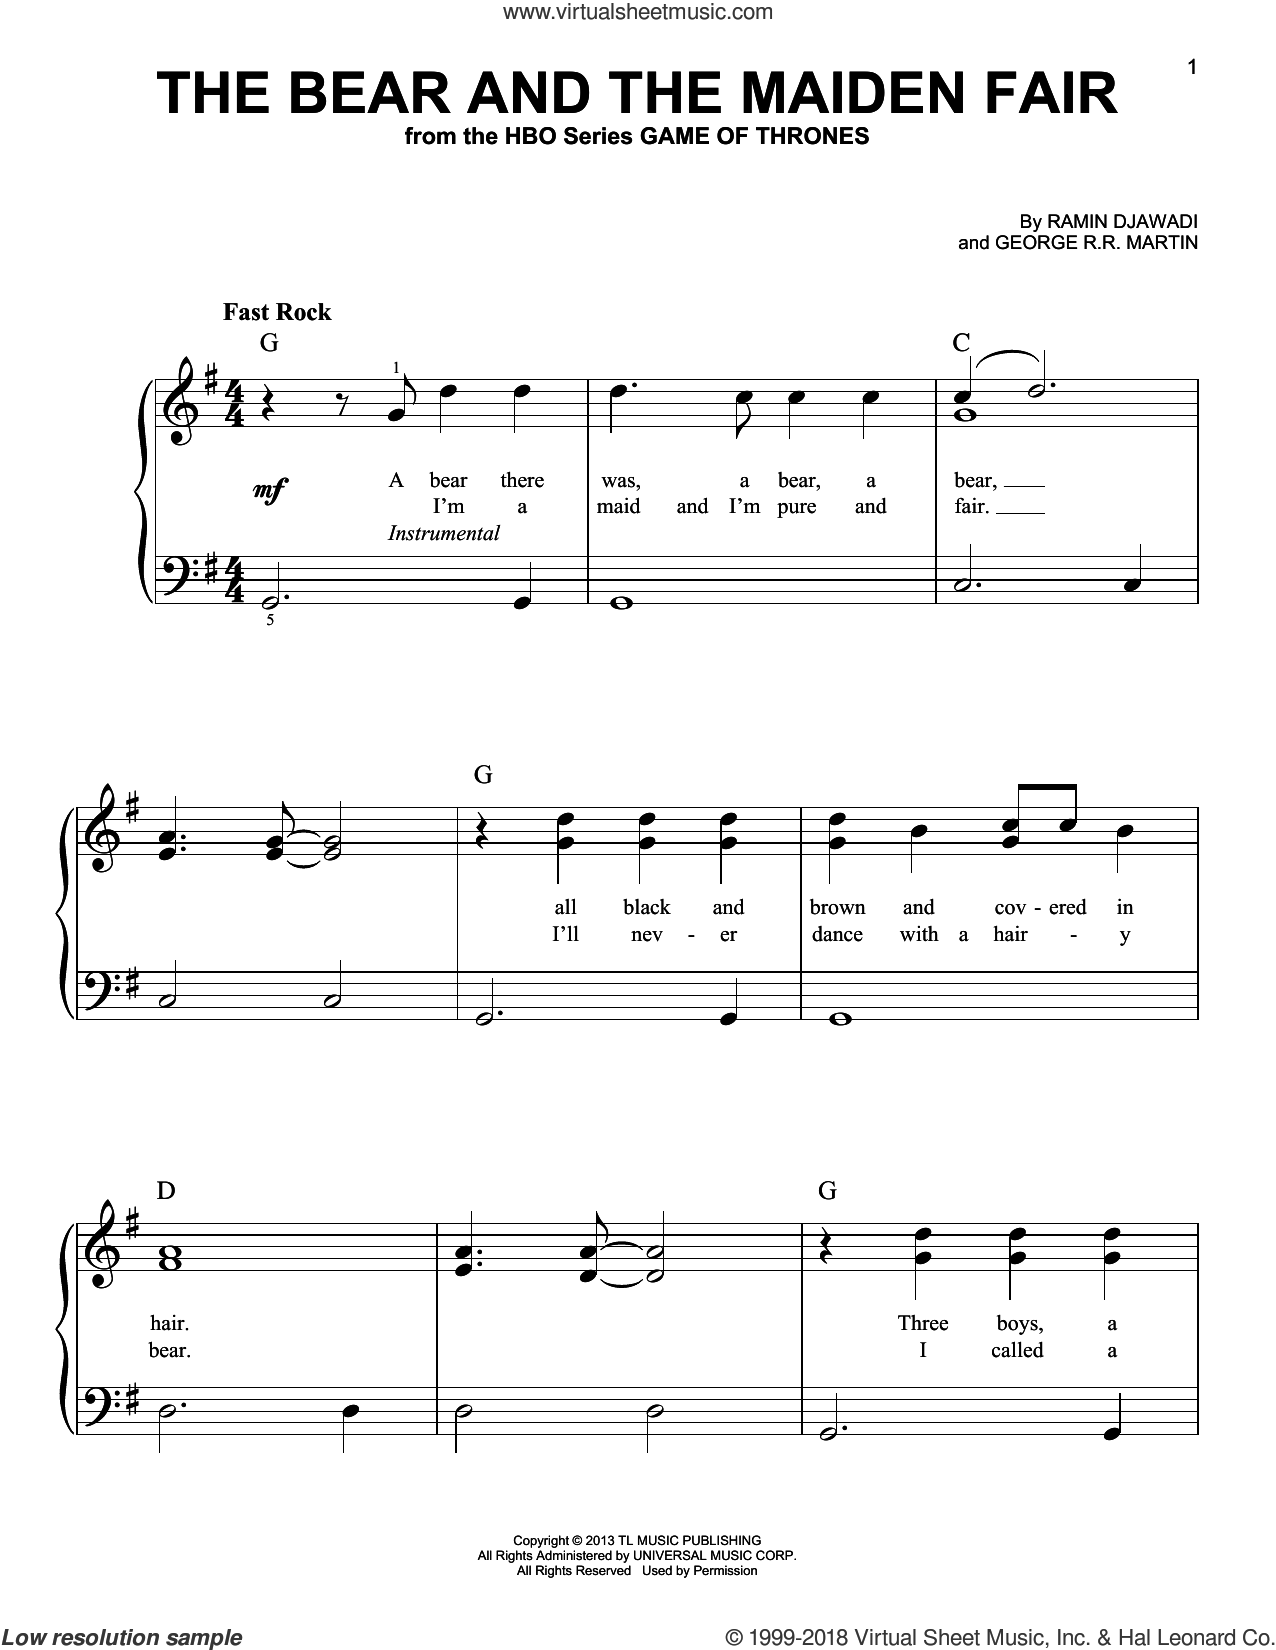 The Bear And The Maiden Fair (from Game of Thrones) sheet music for piano solo by Ramin Djawadi and George R.R. Martin, classical score, easy skill level